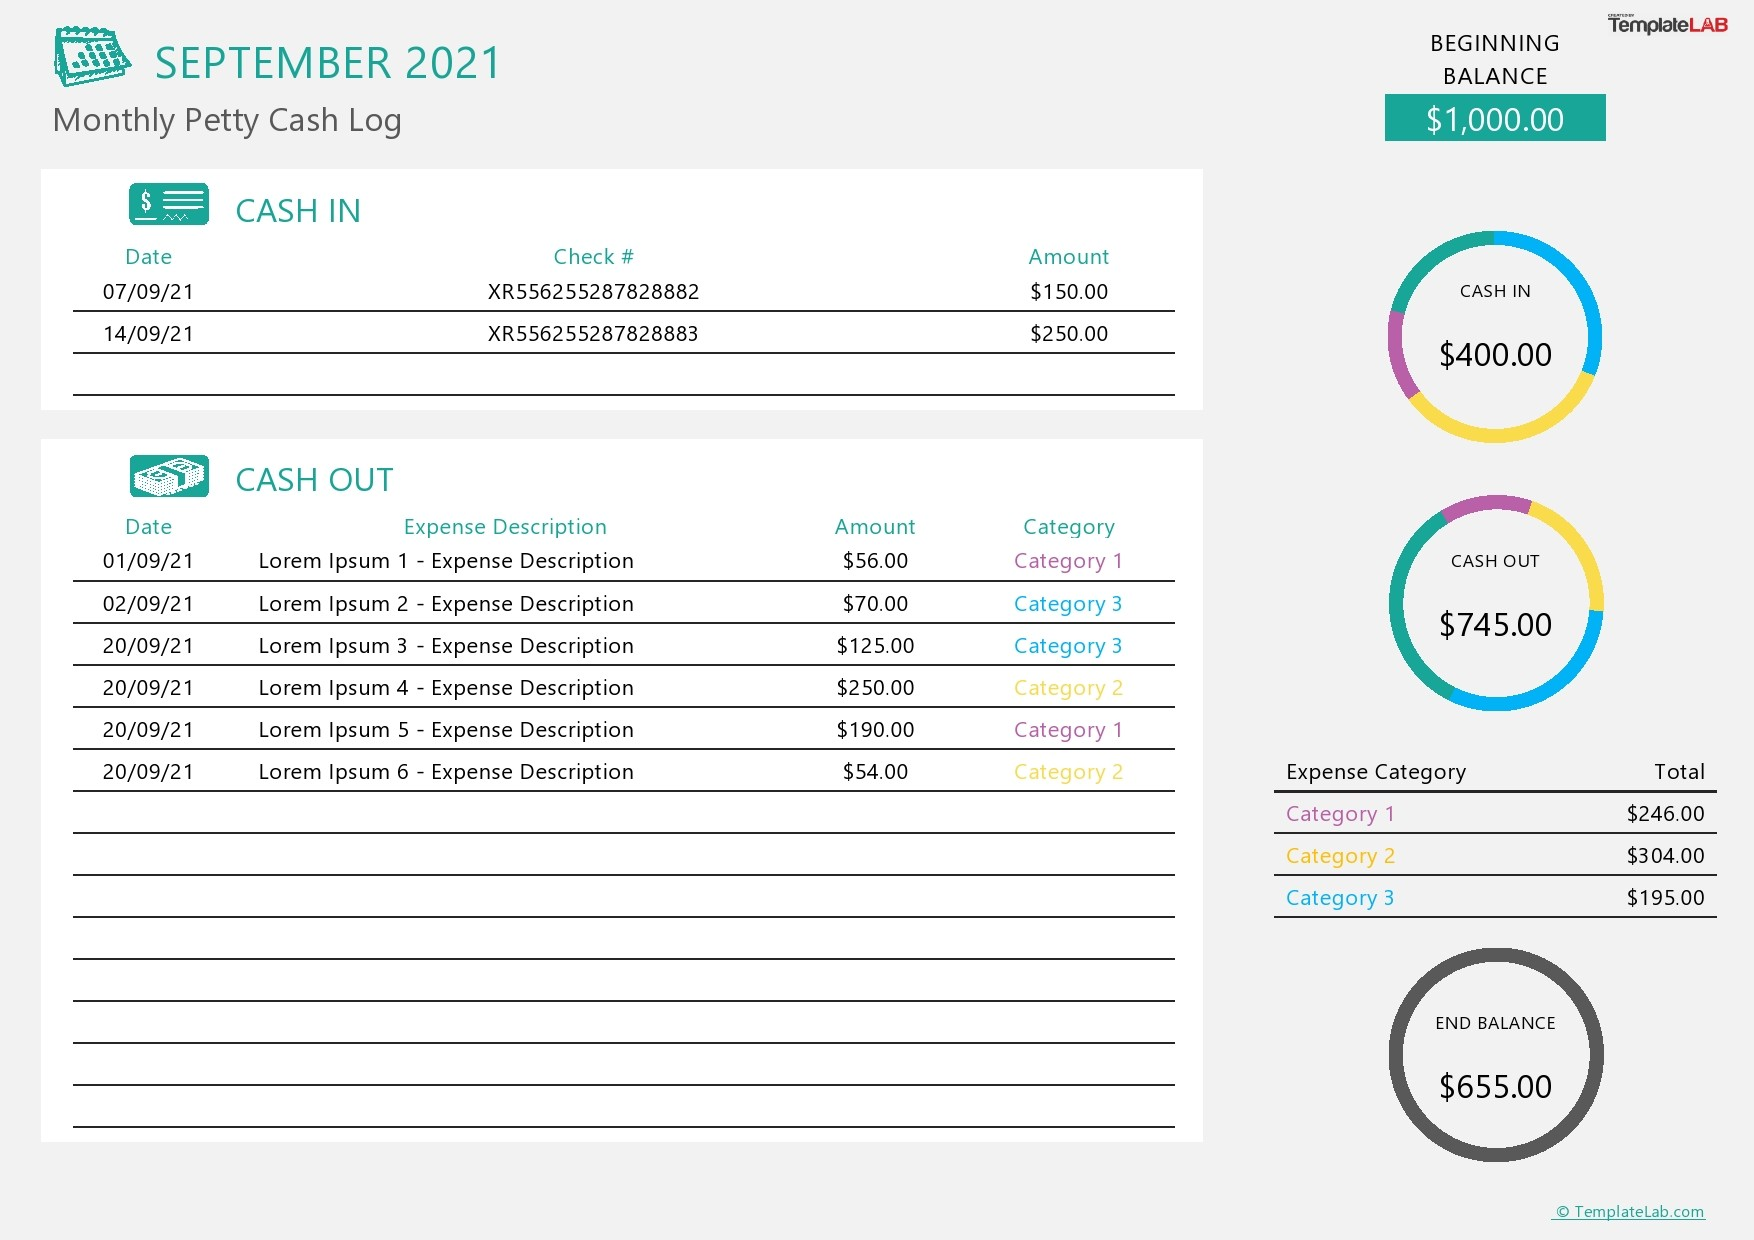 Free Monthly Petty Cash Log Template - TemplateLab.com